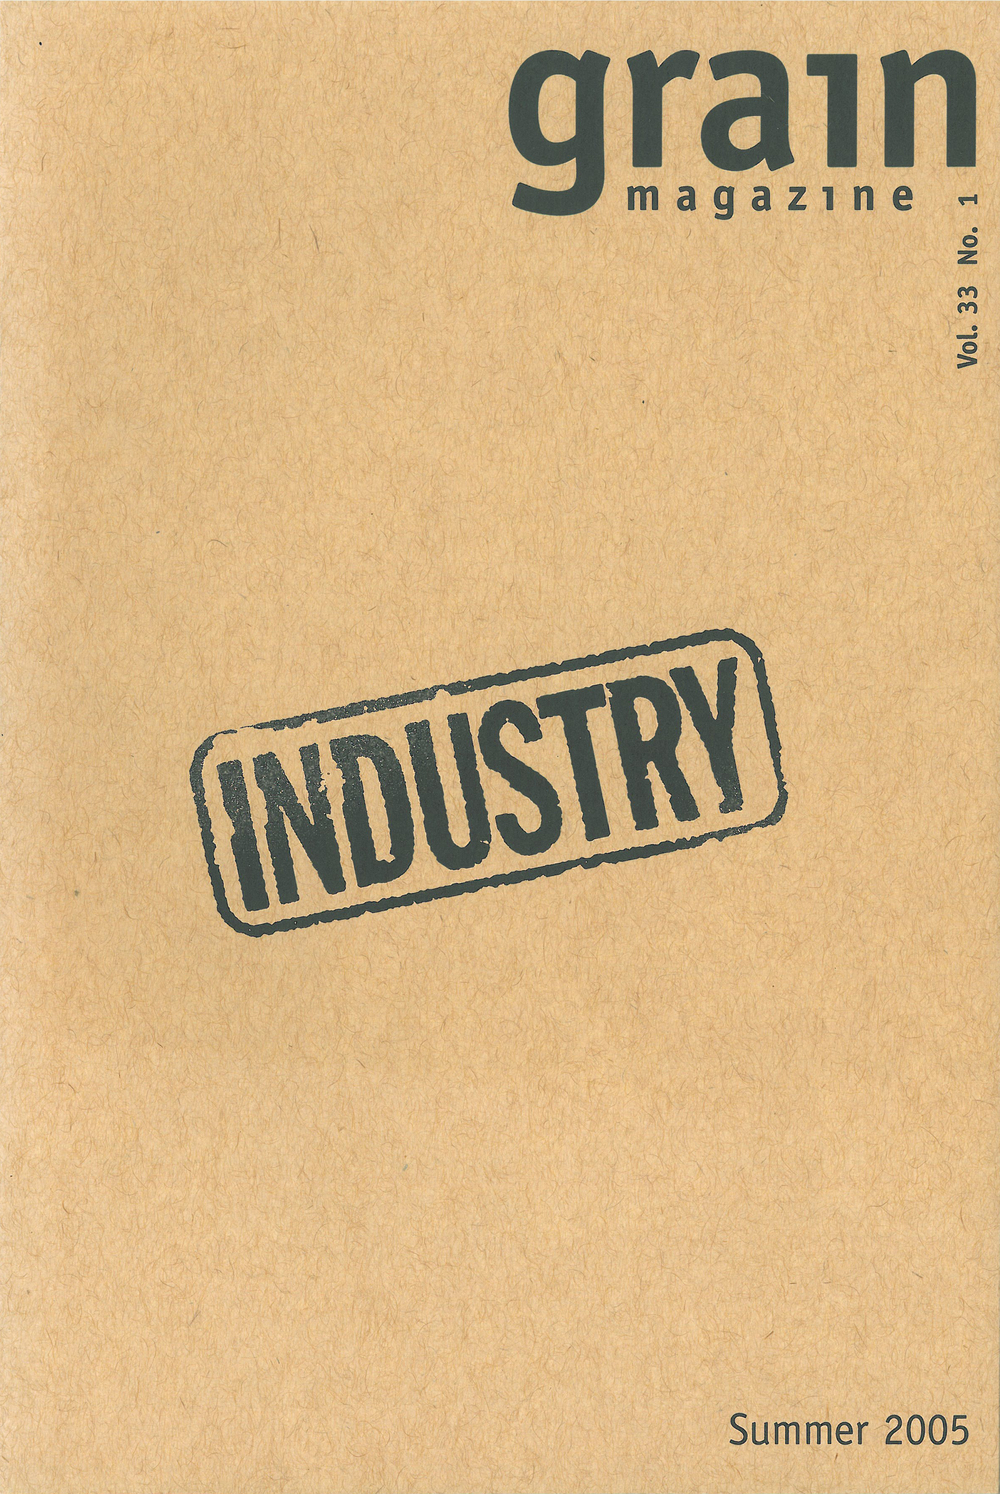 33.1 Summer 2005, Industry (sleeve)